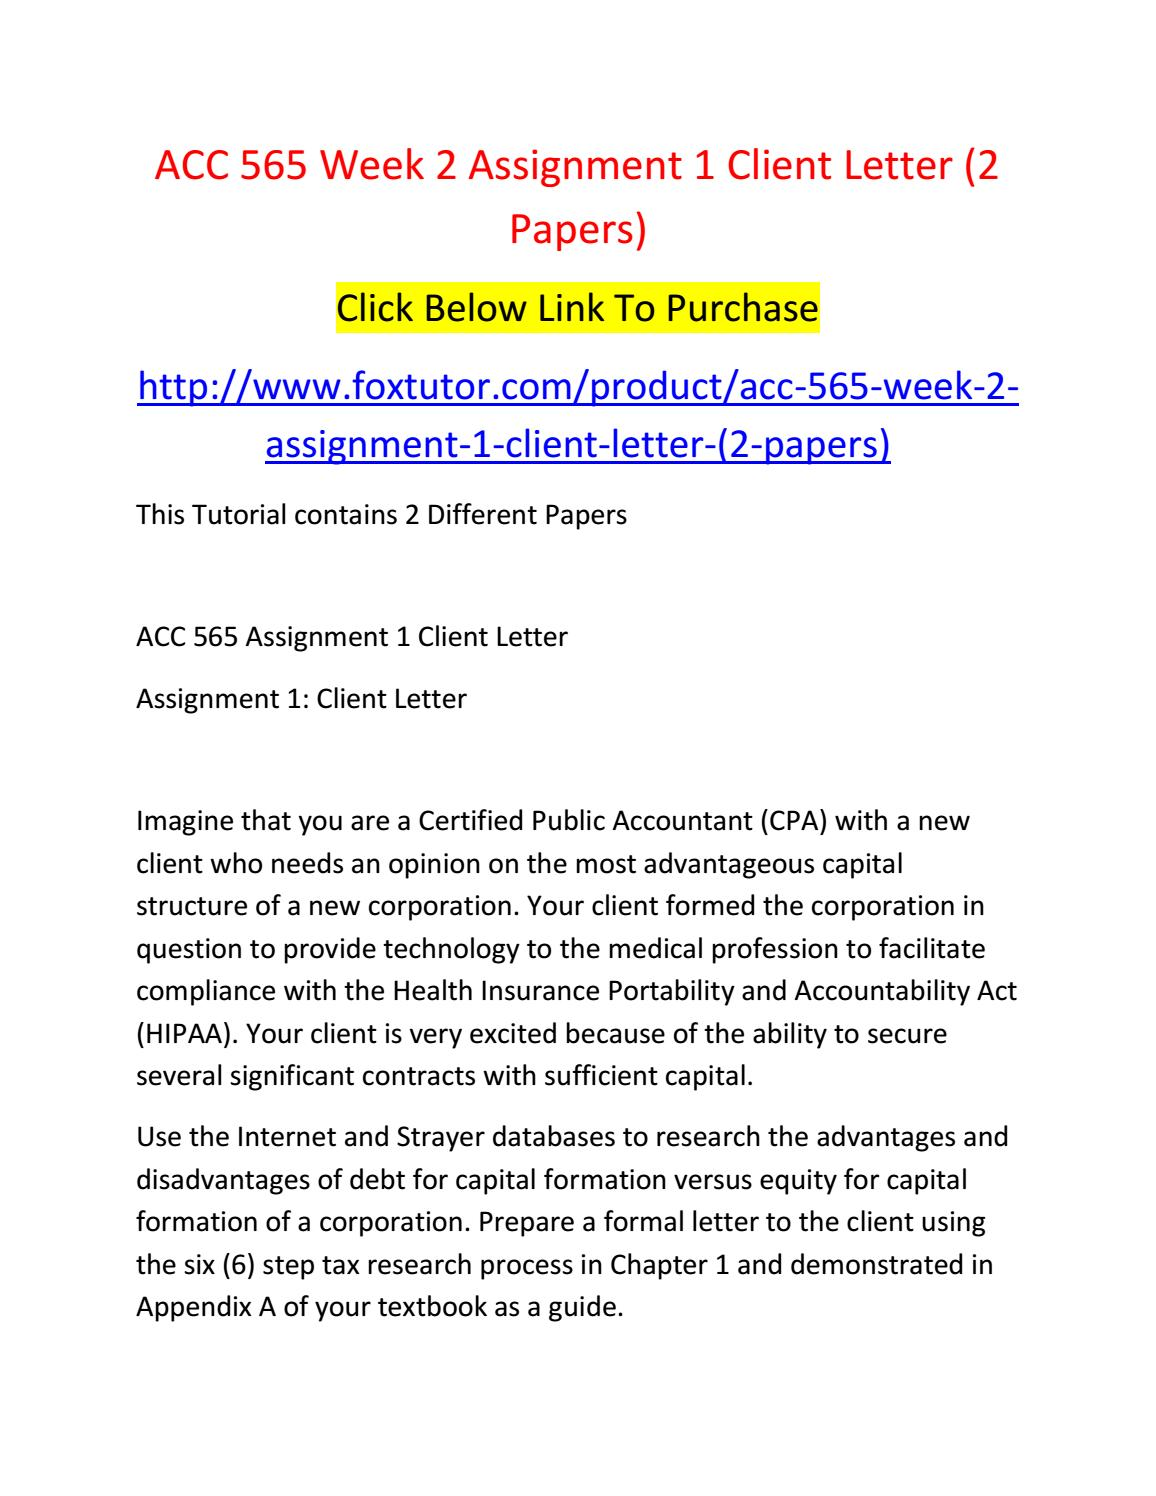 act 573 week 1 homework Acc 599 assignment 1 impact of the sarbanes-oxley act (sox) (strayer) by robirt carr acc 573 week 10 assignment 3 (strayer) by robirt carr acc 573 week 7 assignment 2 new strategies for financial reporting (strayer) by robirt carr.